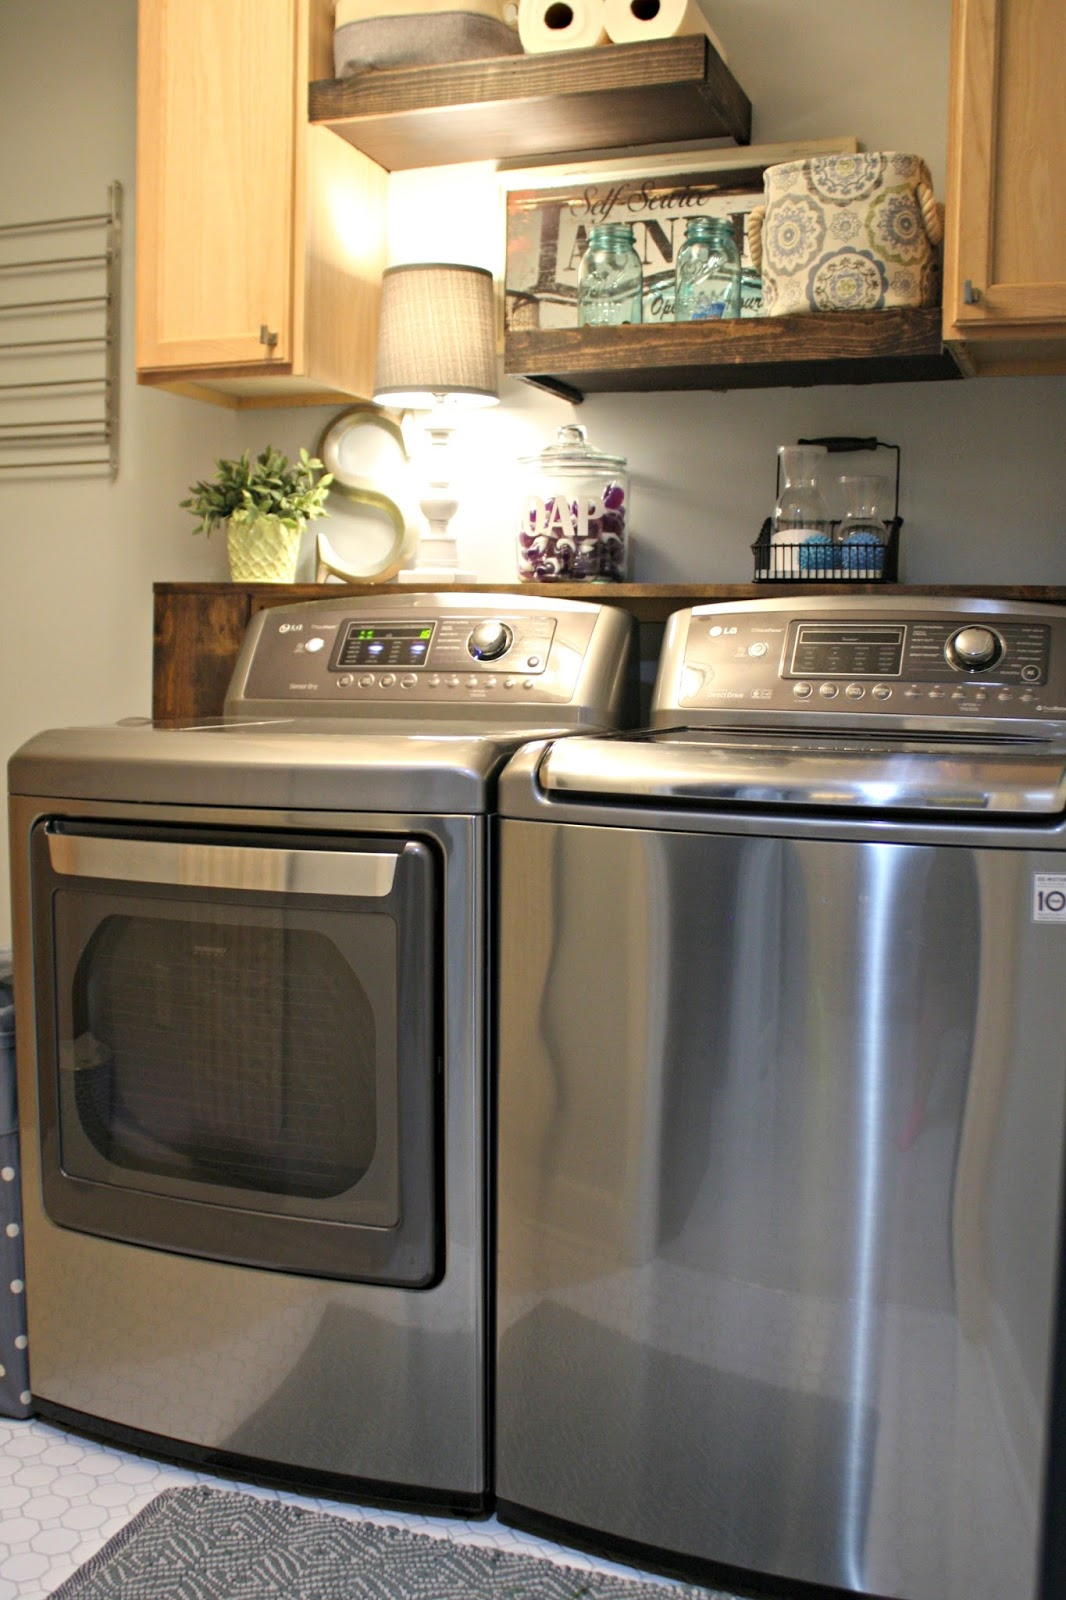 Lg washer and dryer review four years later from thrifty decor chick - Best washer and dryer for small spaces property ...